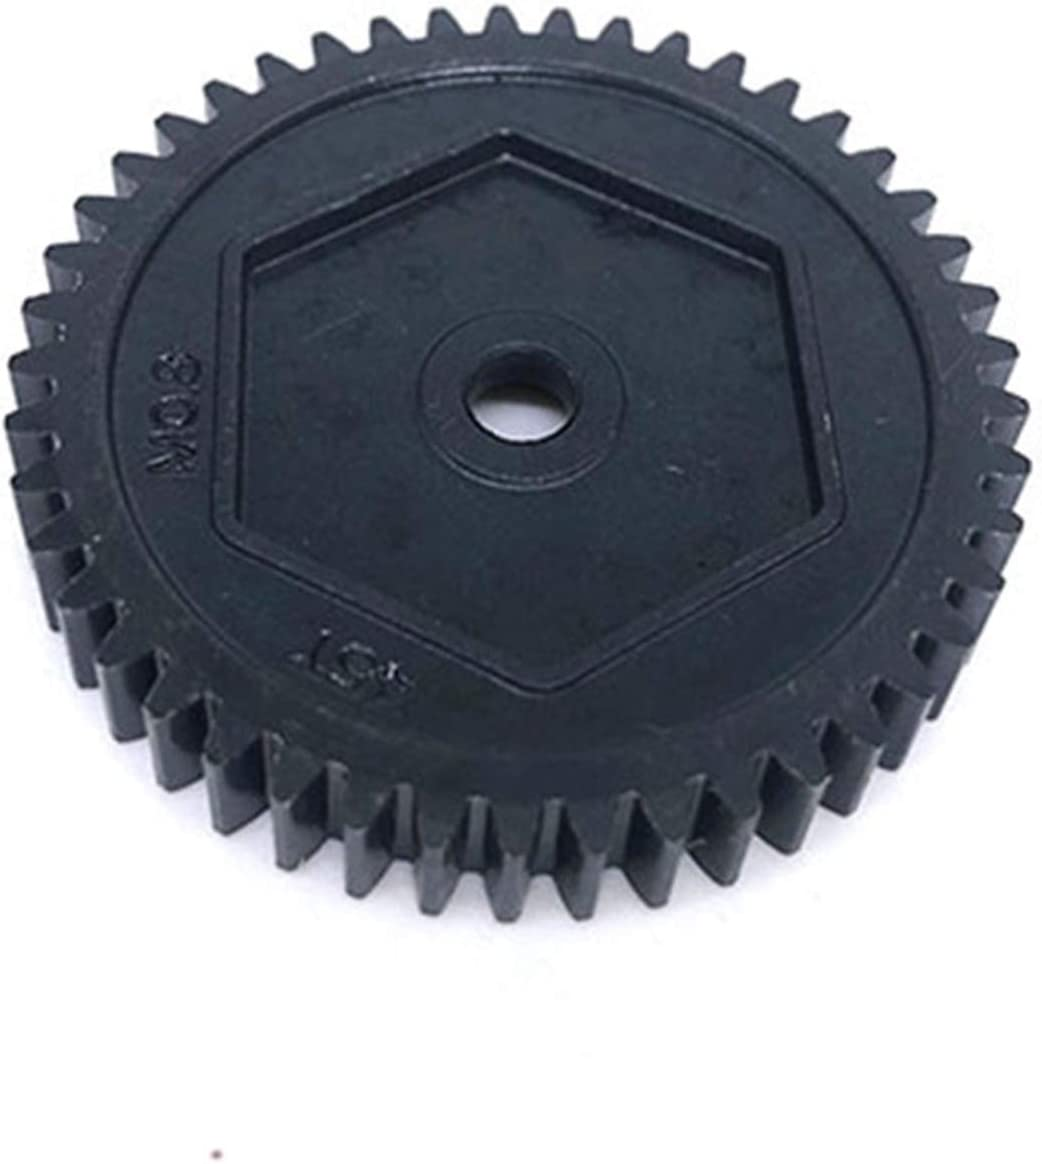 Gear 1P Metal Spur 45T Over item handling 0.8M 32P Gorgeous 10 1 Part Crawler for 8053